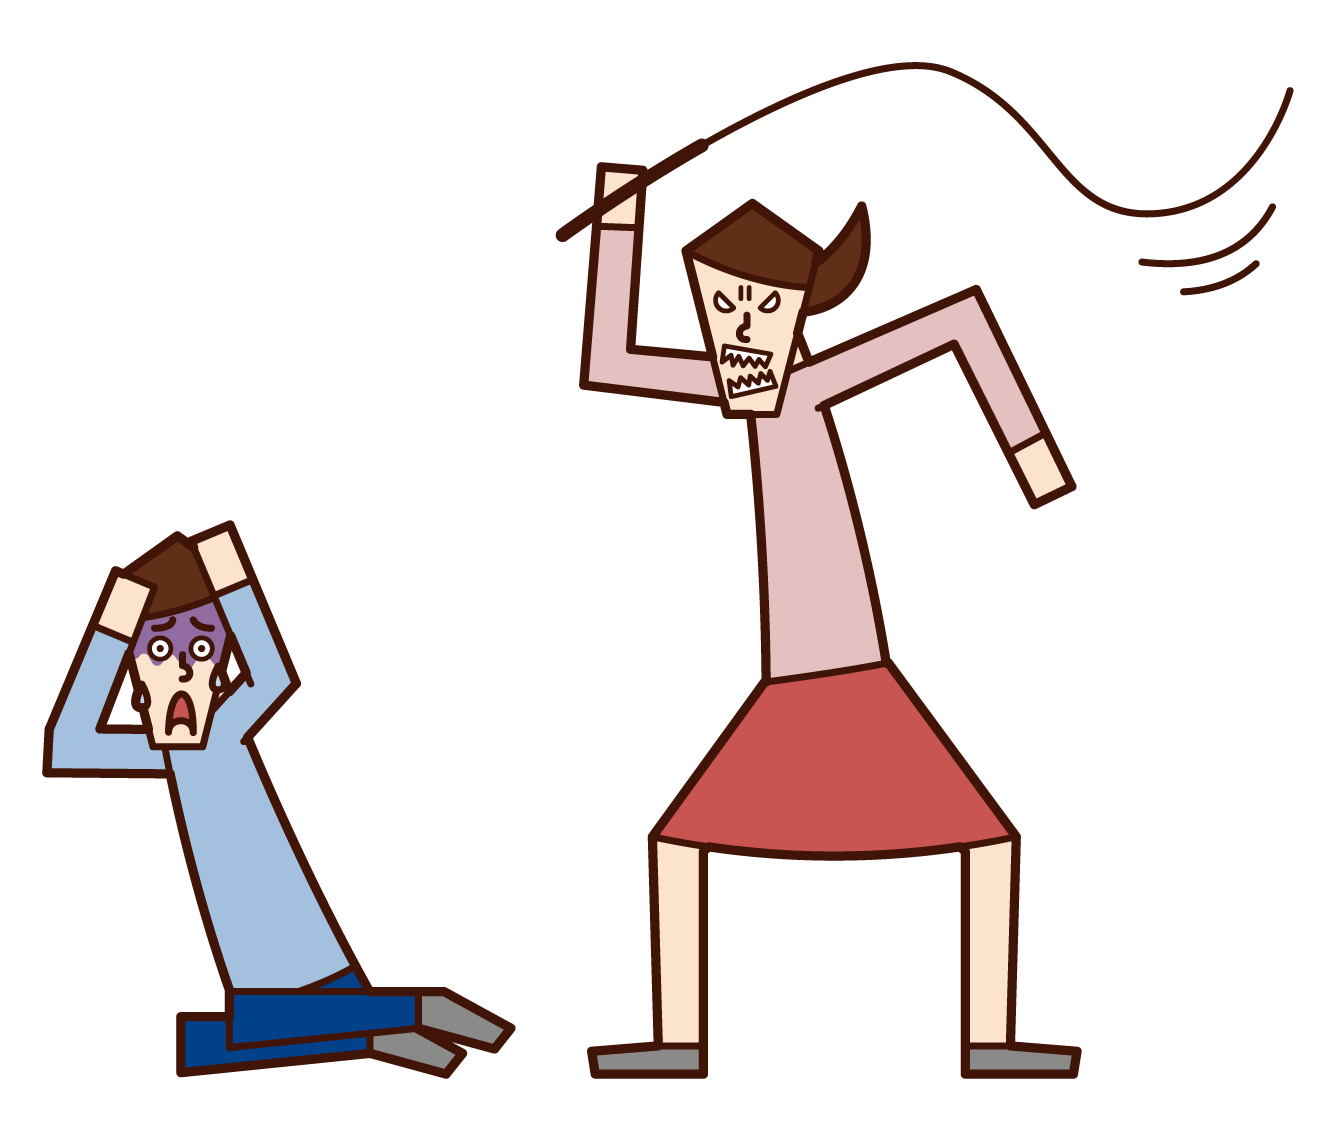 Illustration of a woman who commits domestic violence